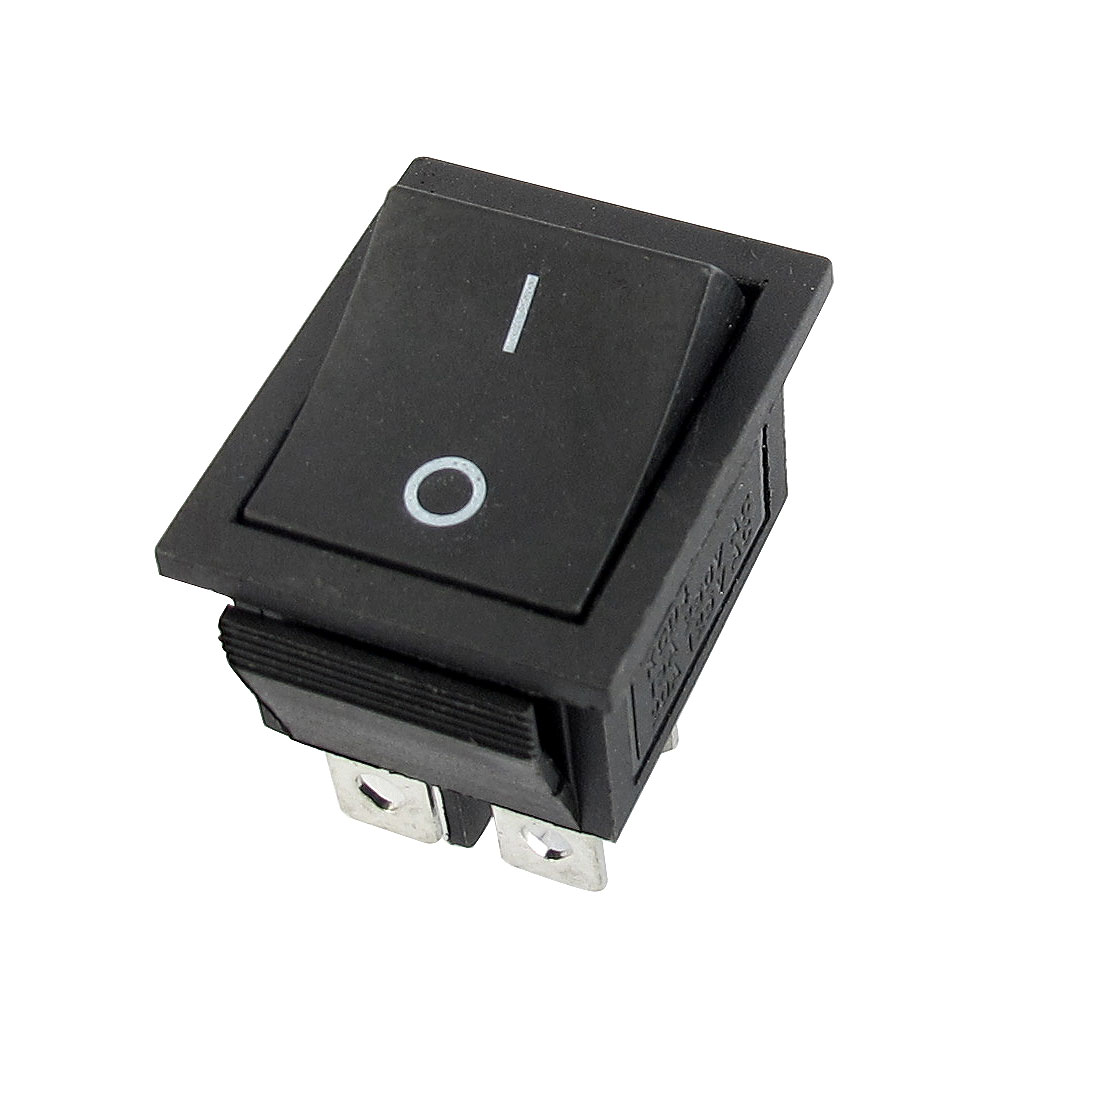 AC250V 15A AC125V 20A DPST 4-Pin 2-Position ON/OFF Snap in Mount Boat Rocker Switch Black